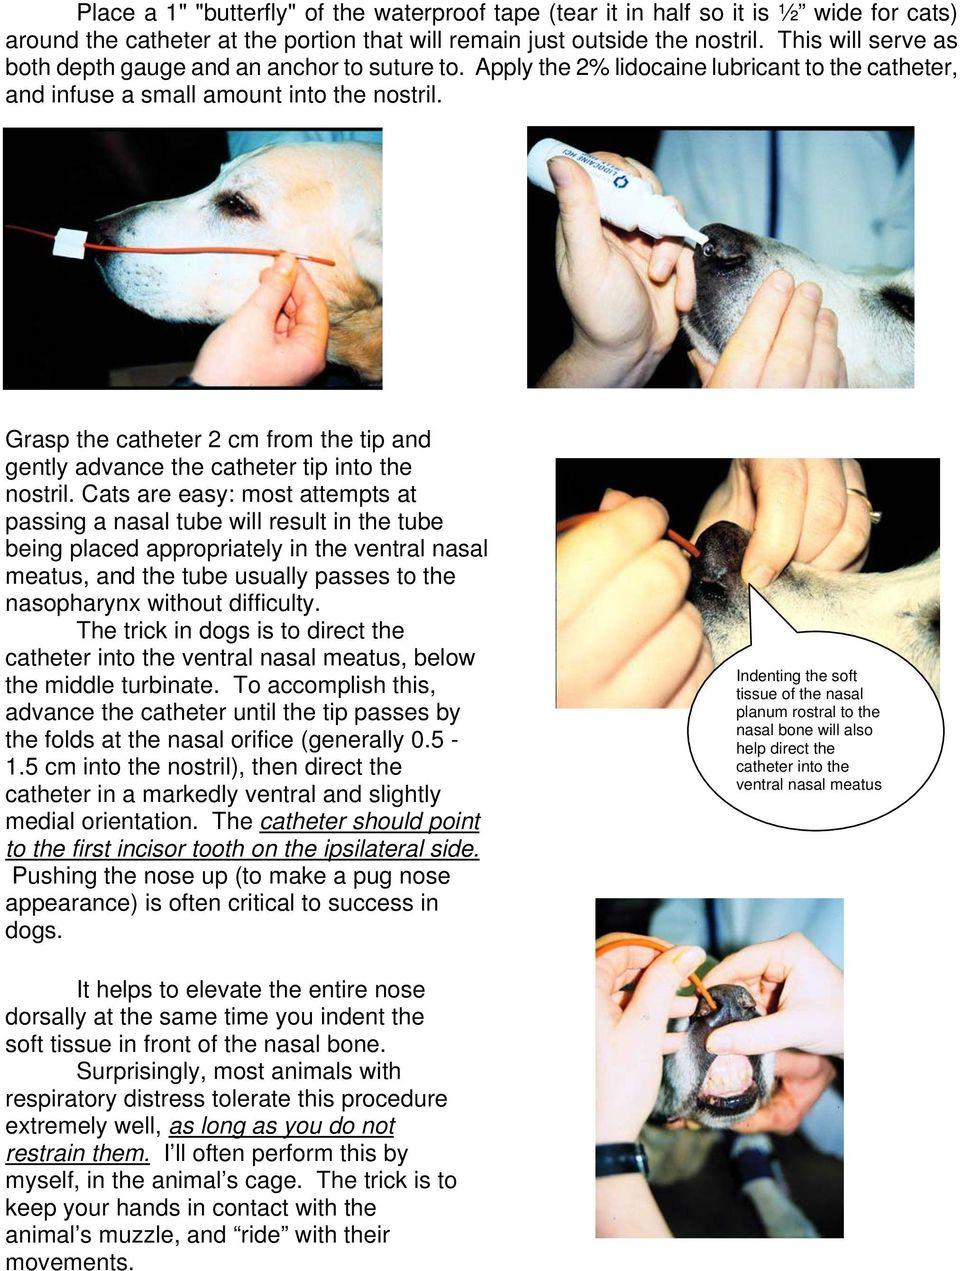 Grasp the catheter 2 cm from the tip and gently advance the catheter tip into the nostril.